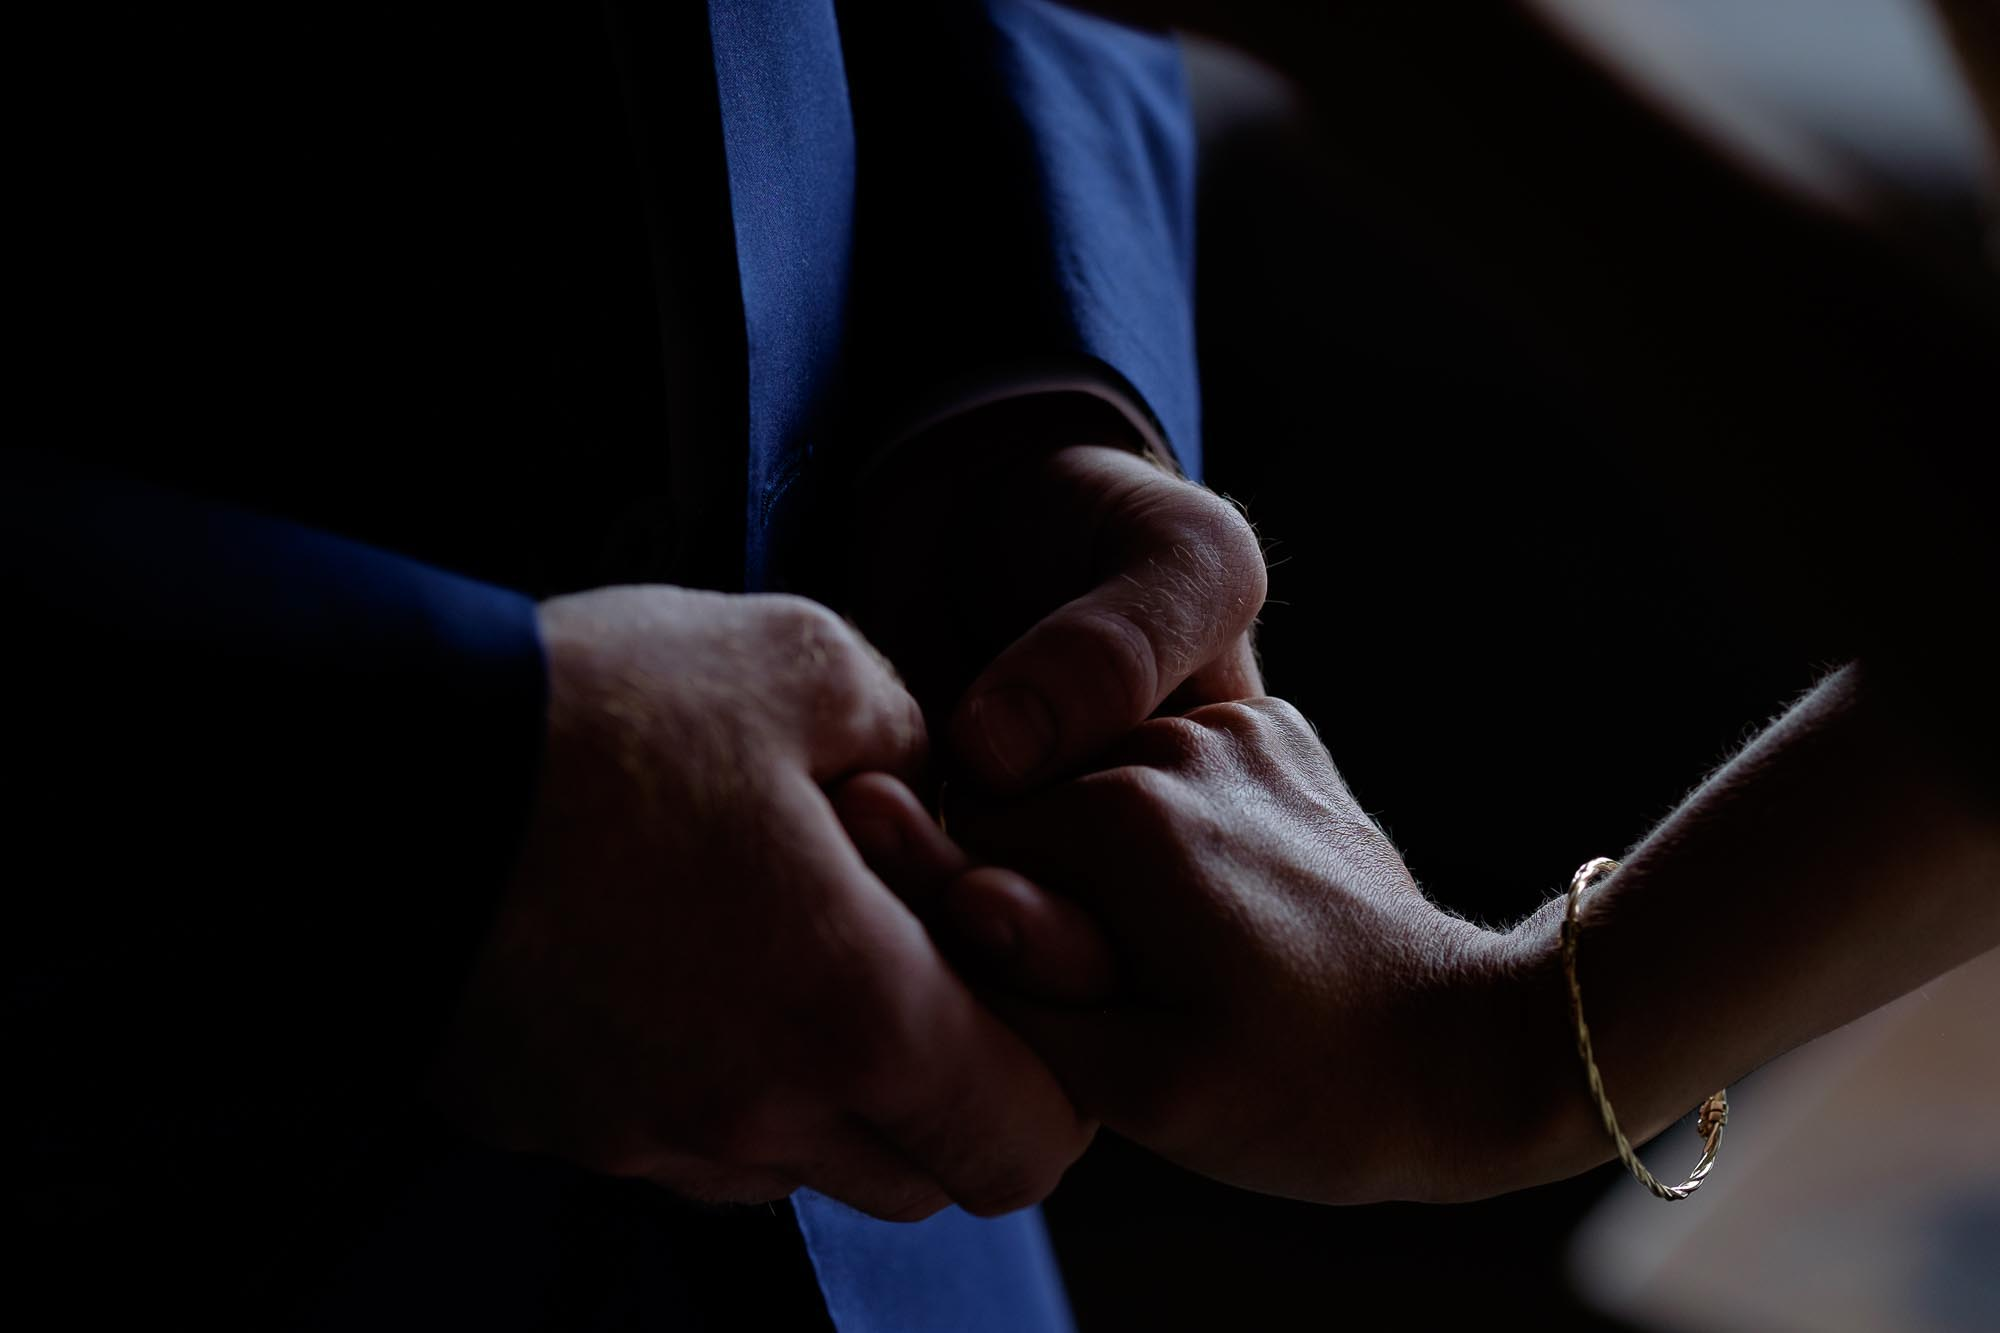 the bride and grooms hands embrace during the wedding ceremony.